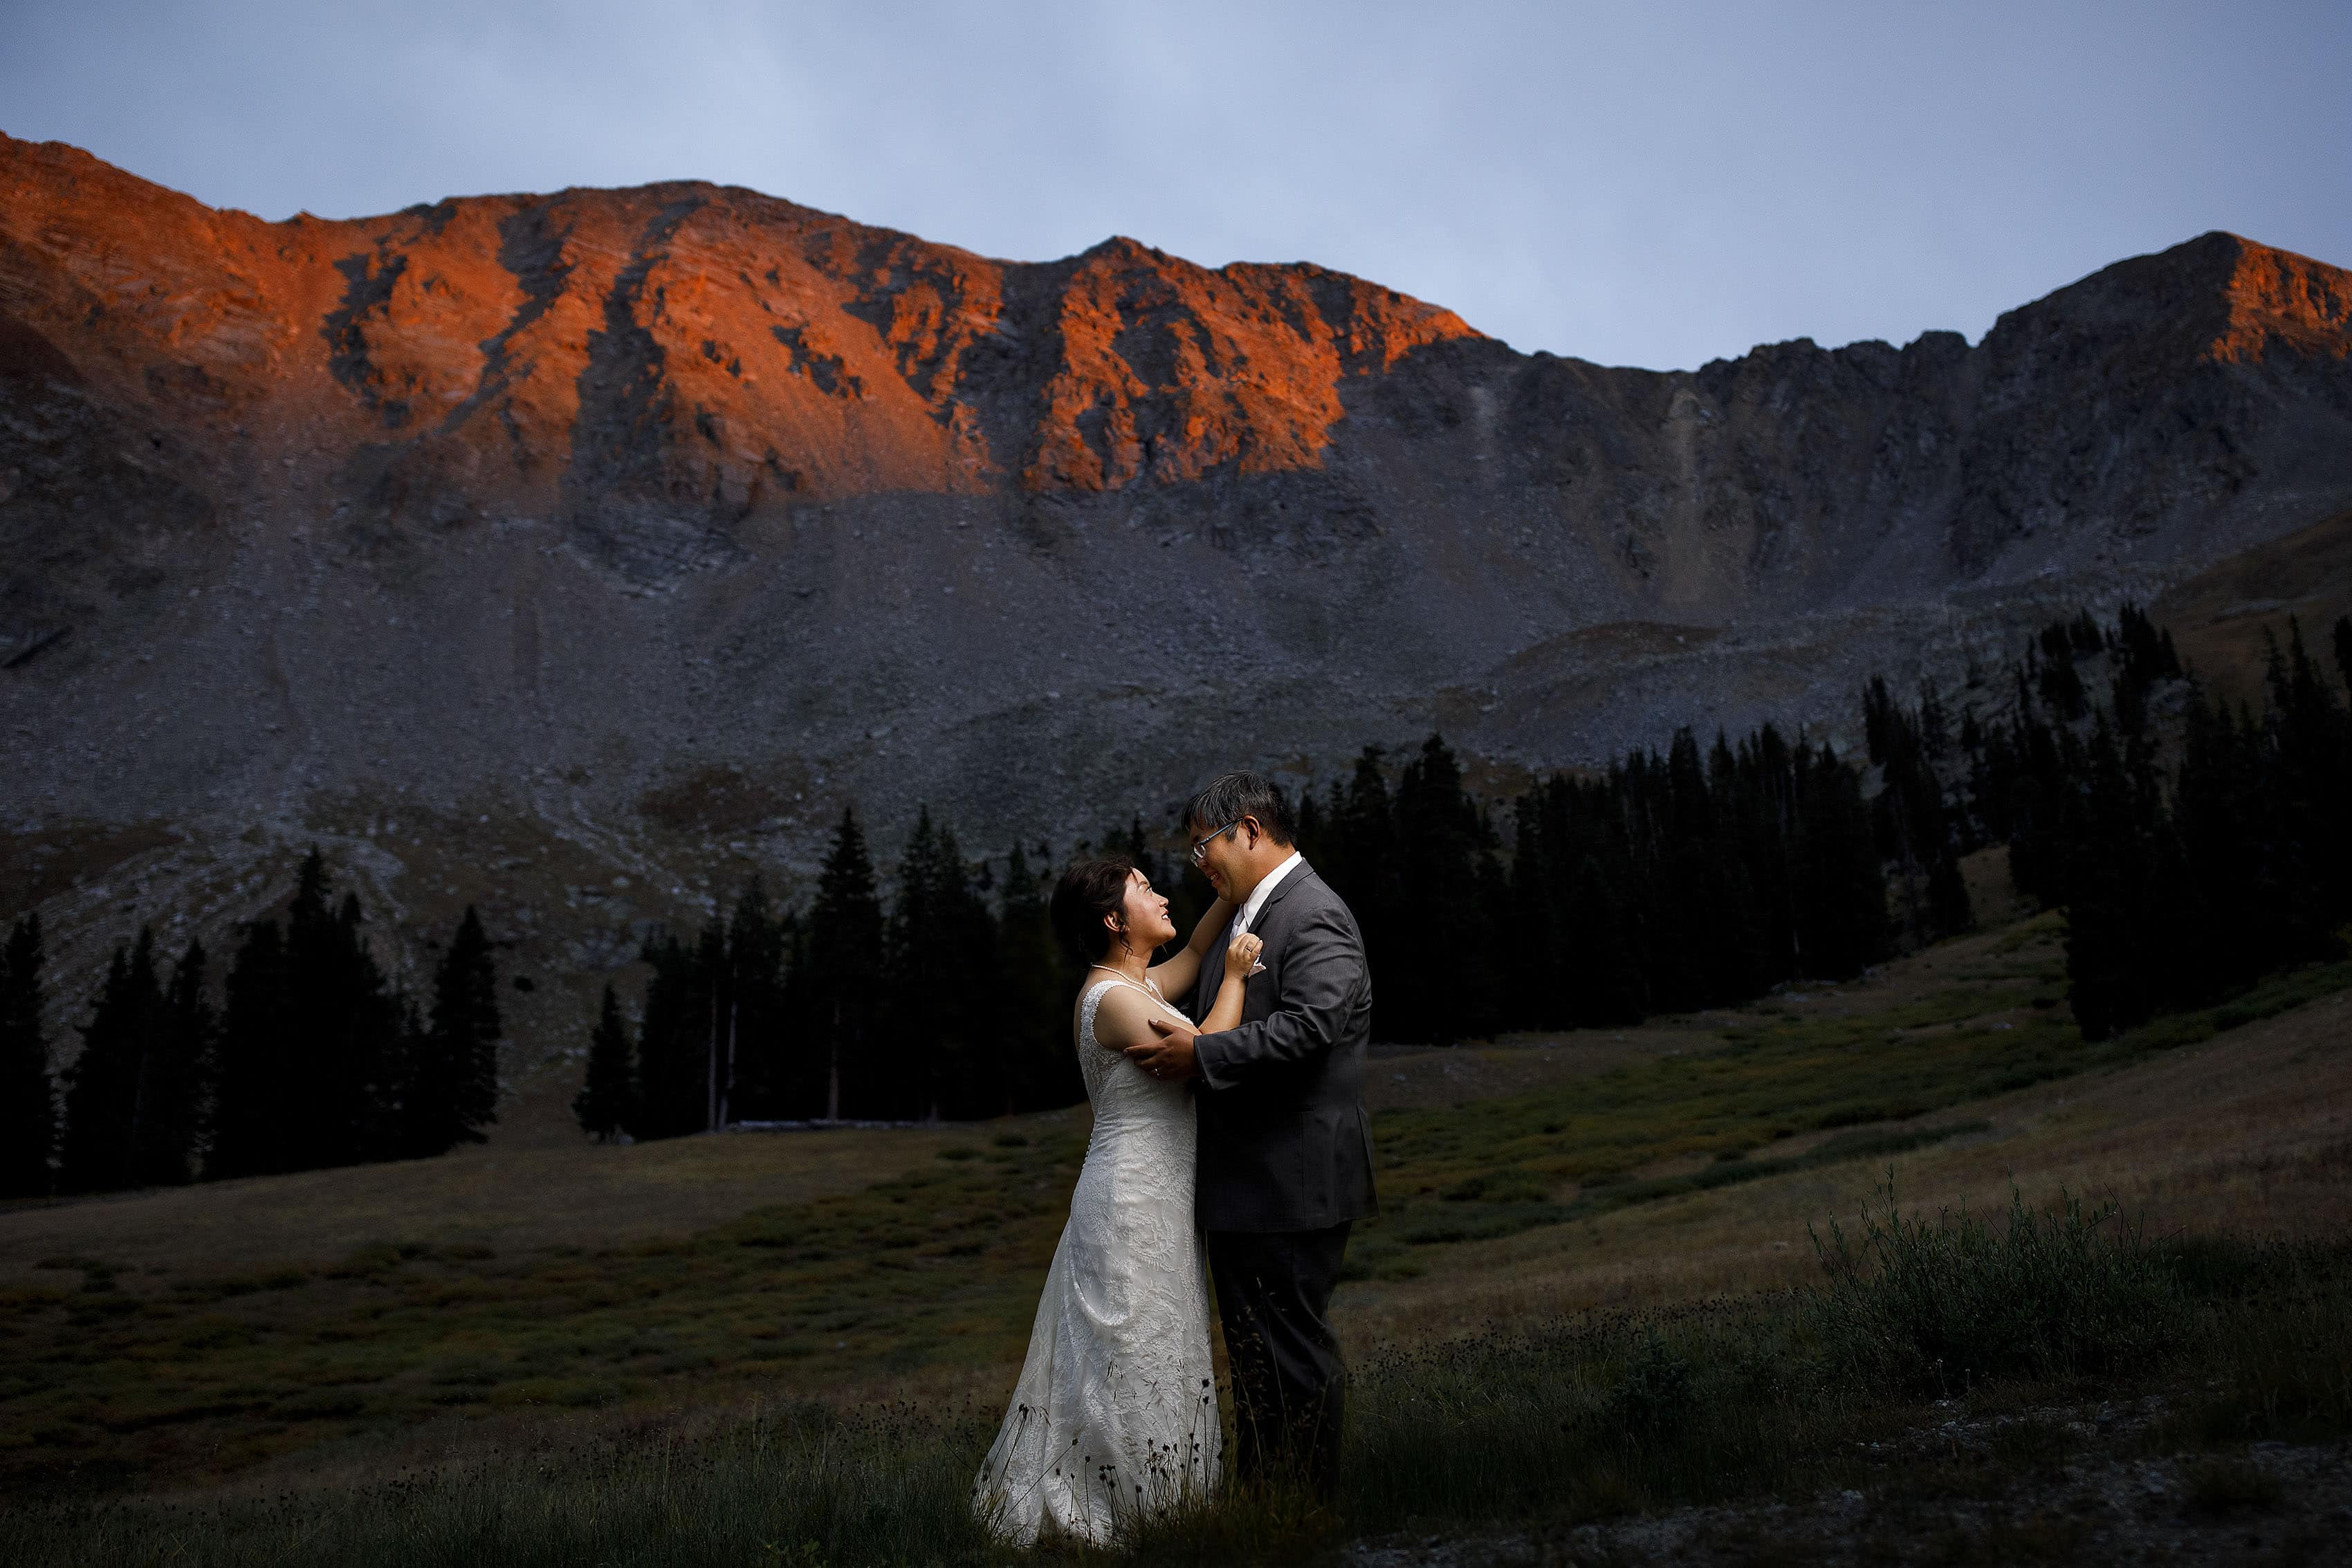 Colorado Ski Resort Wedding | David and Xinya